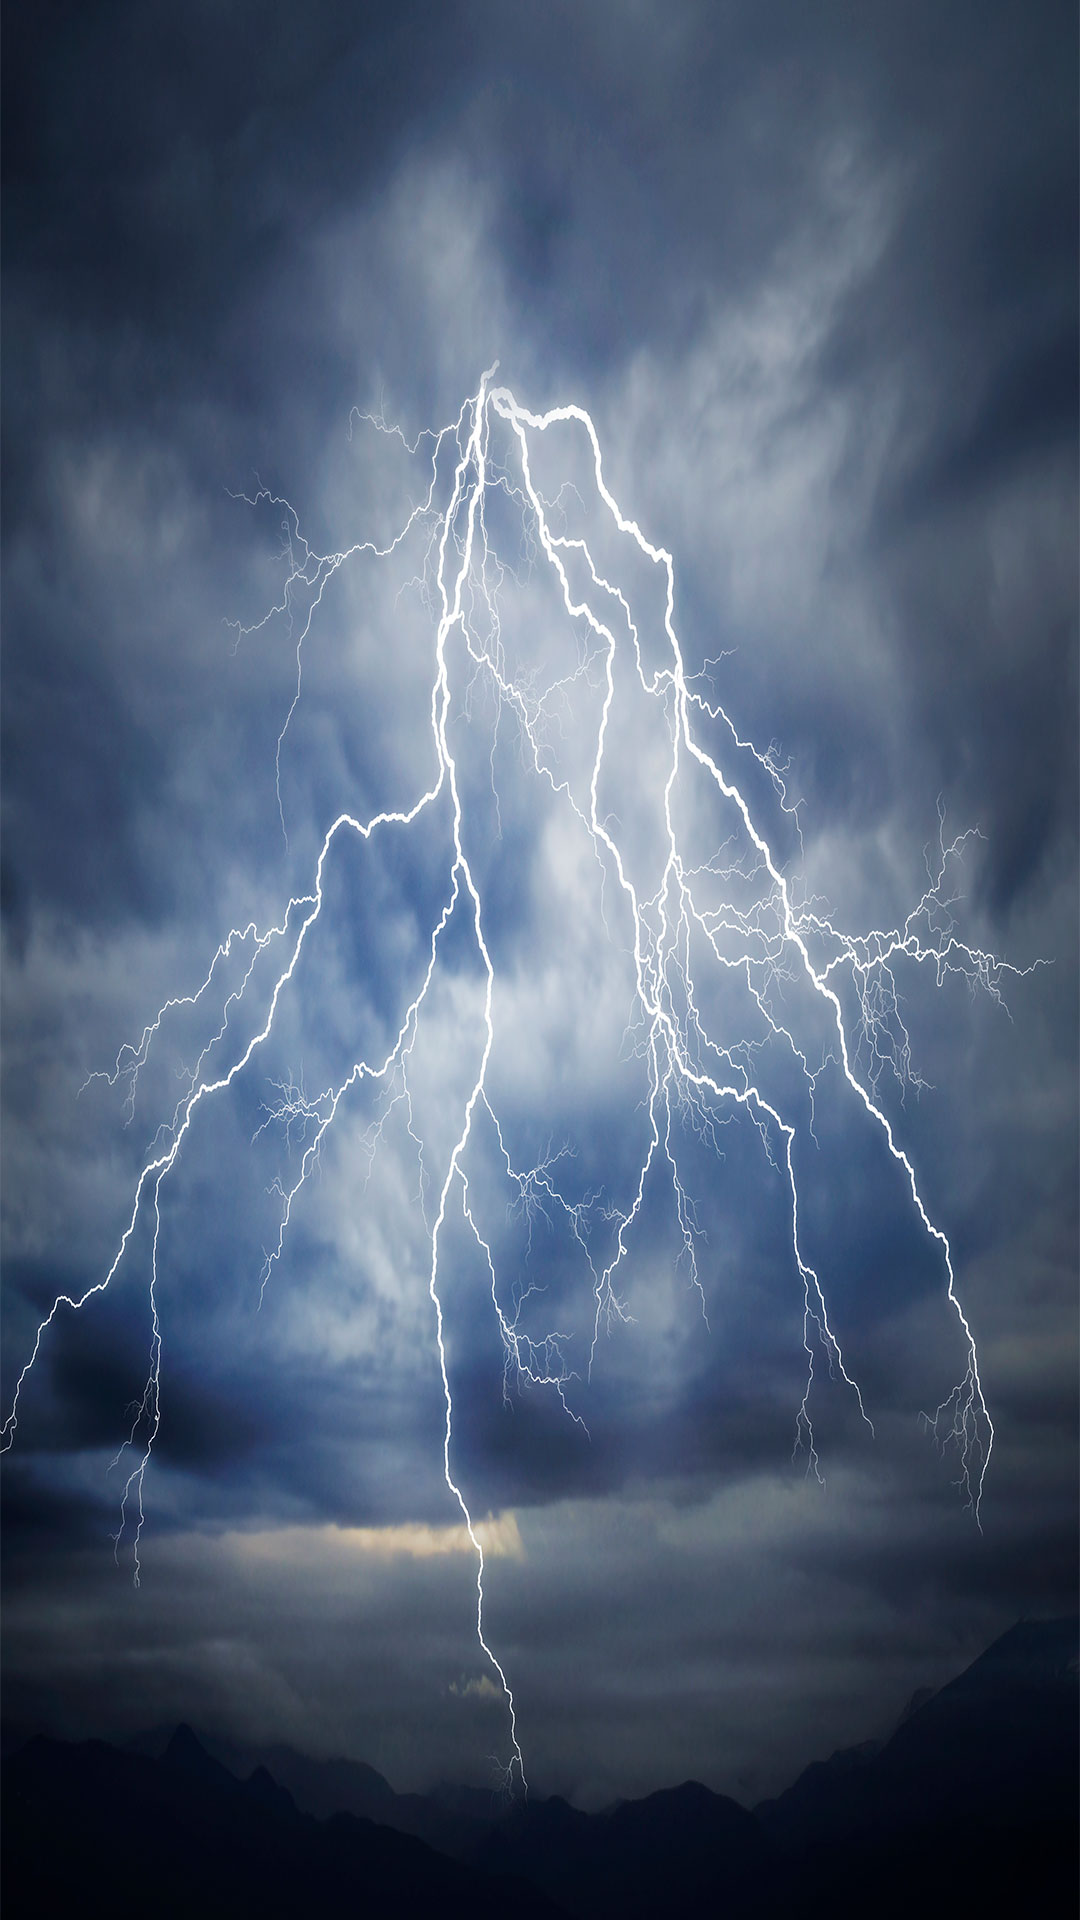 iPhone wallpaper lightning sky 3Wallpapers : notre sélection de fonds d'écran du 28/02/2018